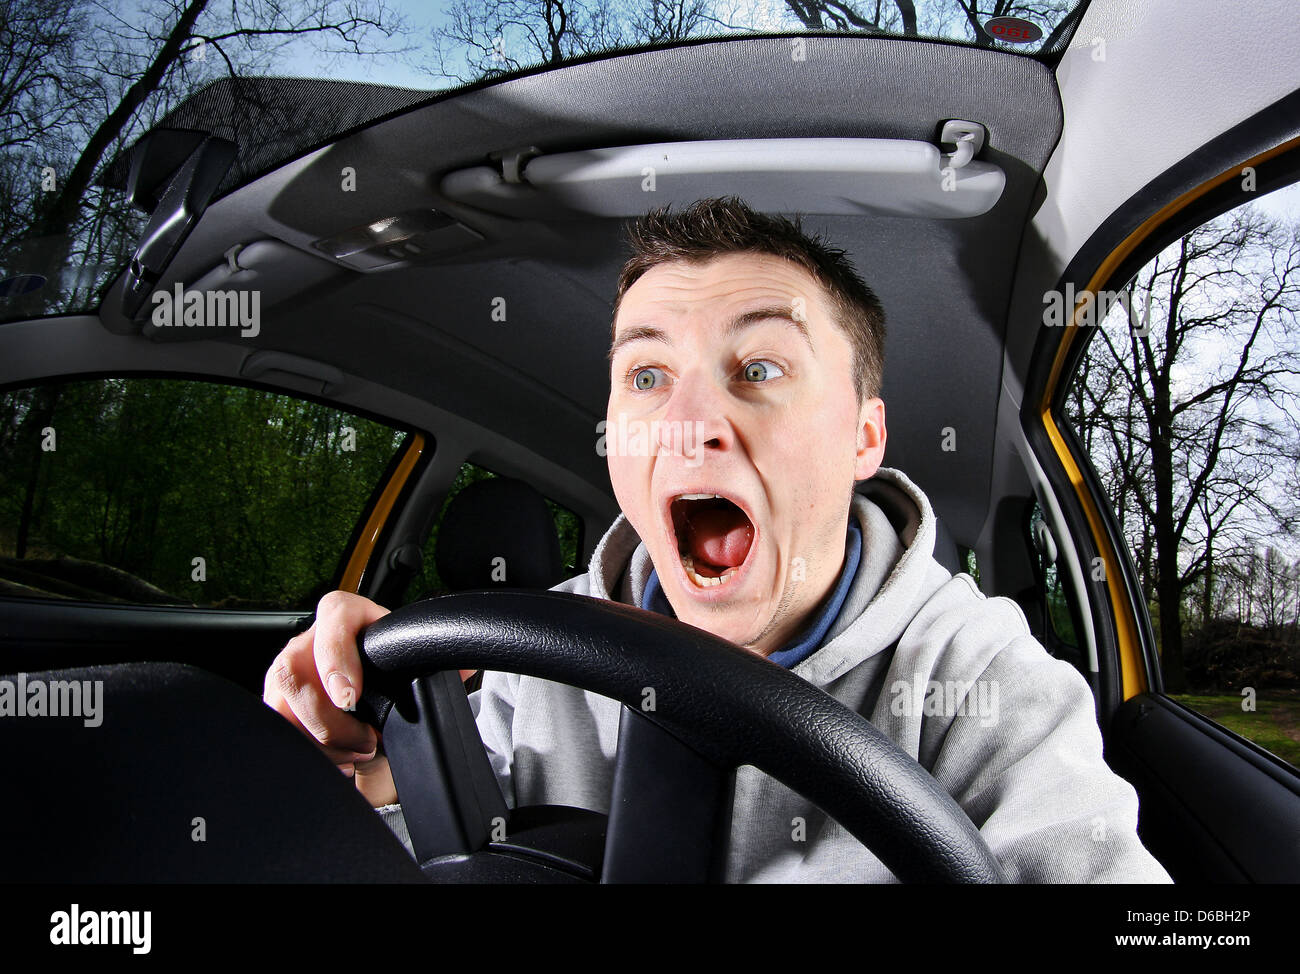 Car Driver High Resolution Stock Photography And Images Alamy